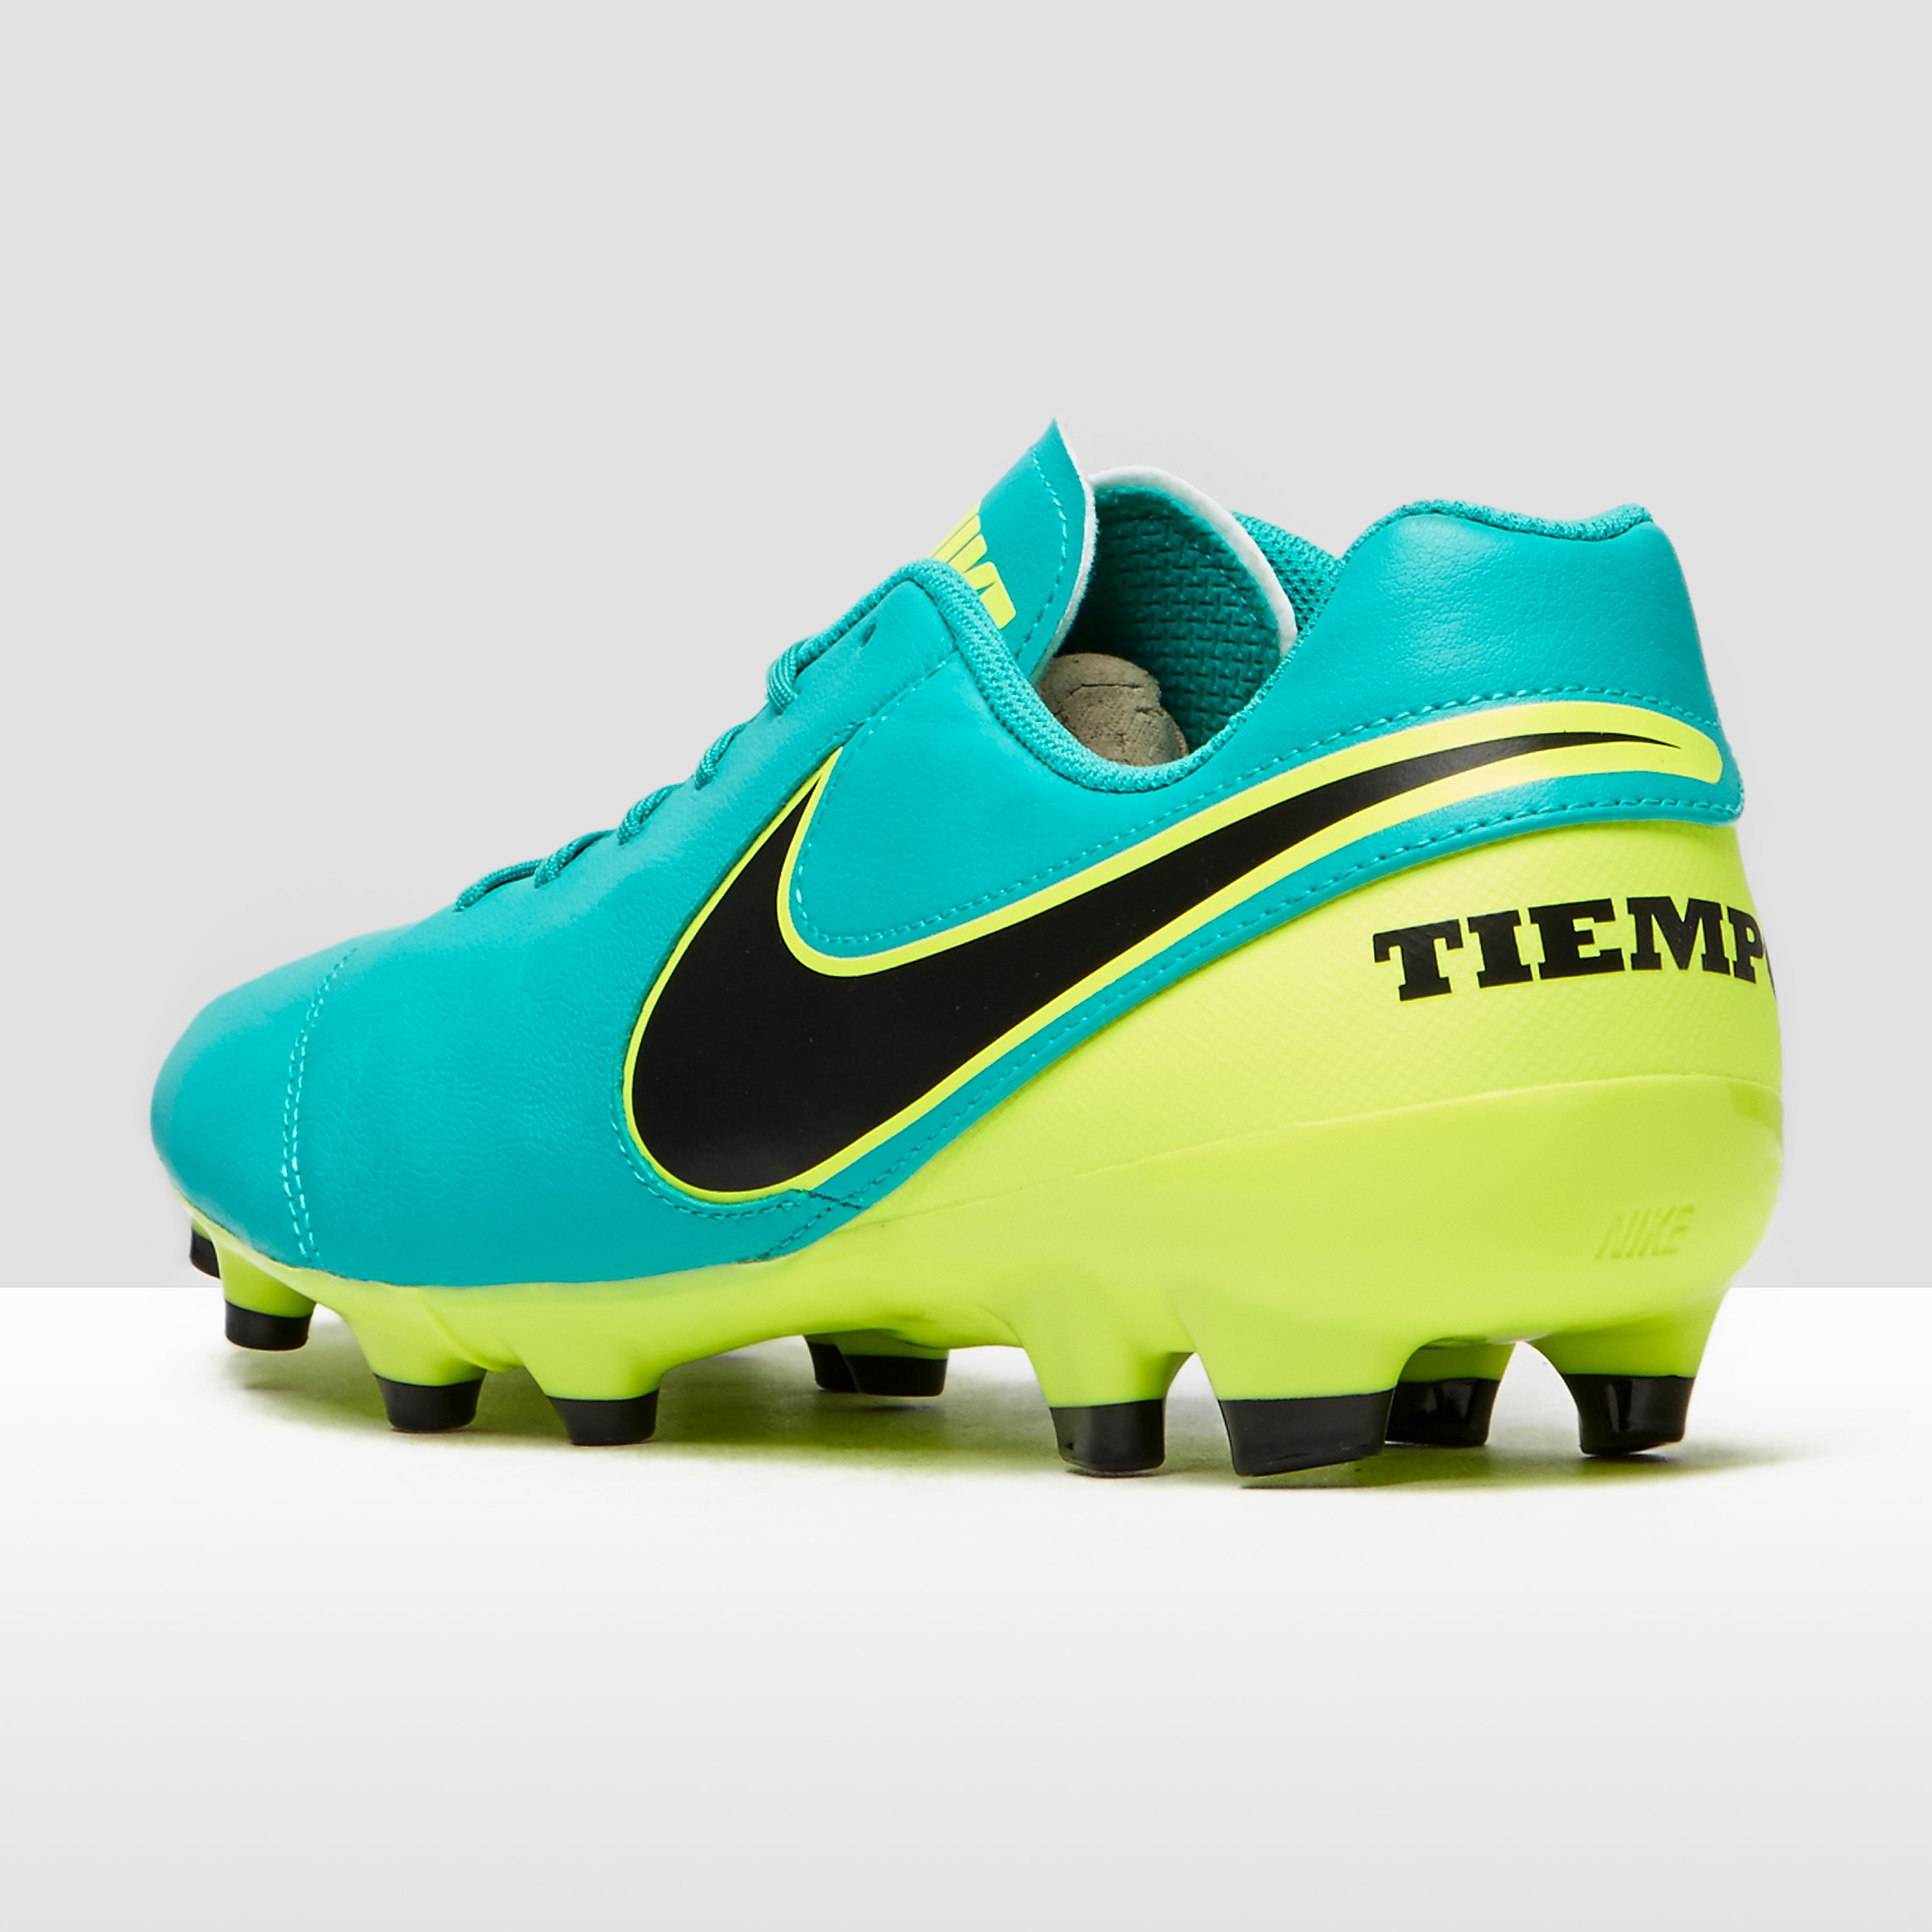 Nike Tiempo Genio leather Firm Ground Men's Football Boots